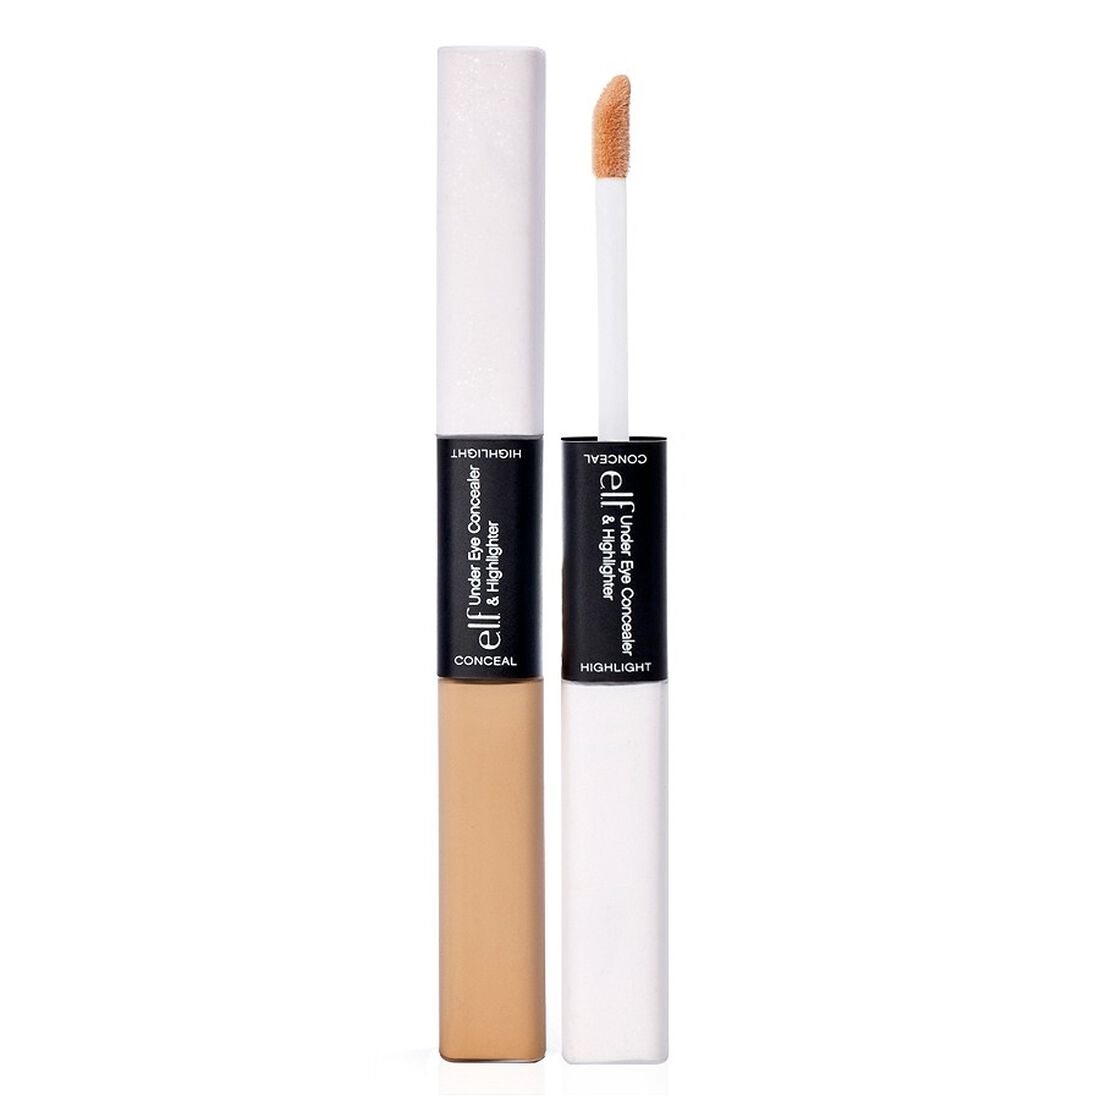 E.l.f Cosmetics - Under Eye Concealer & Highlighter